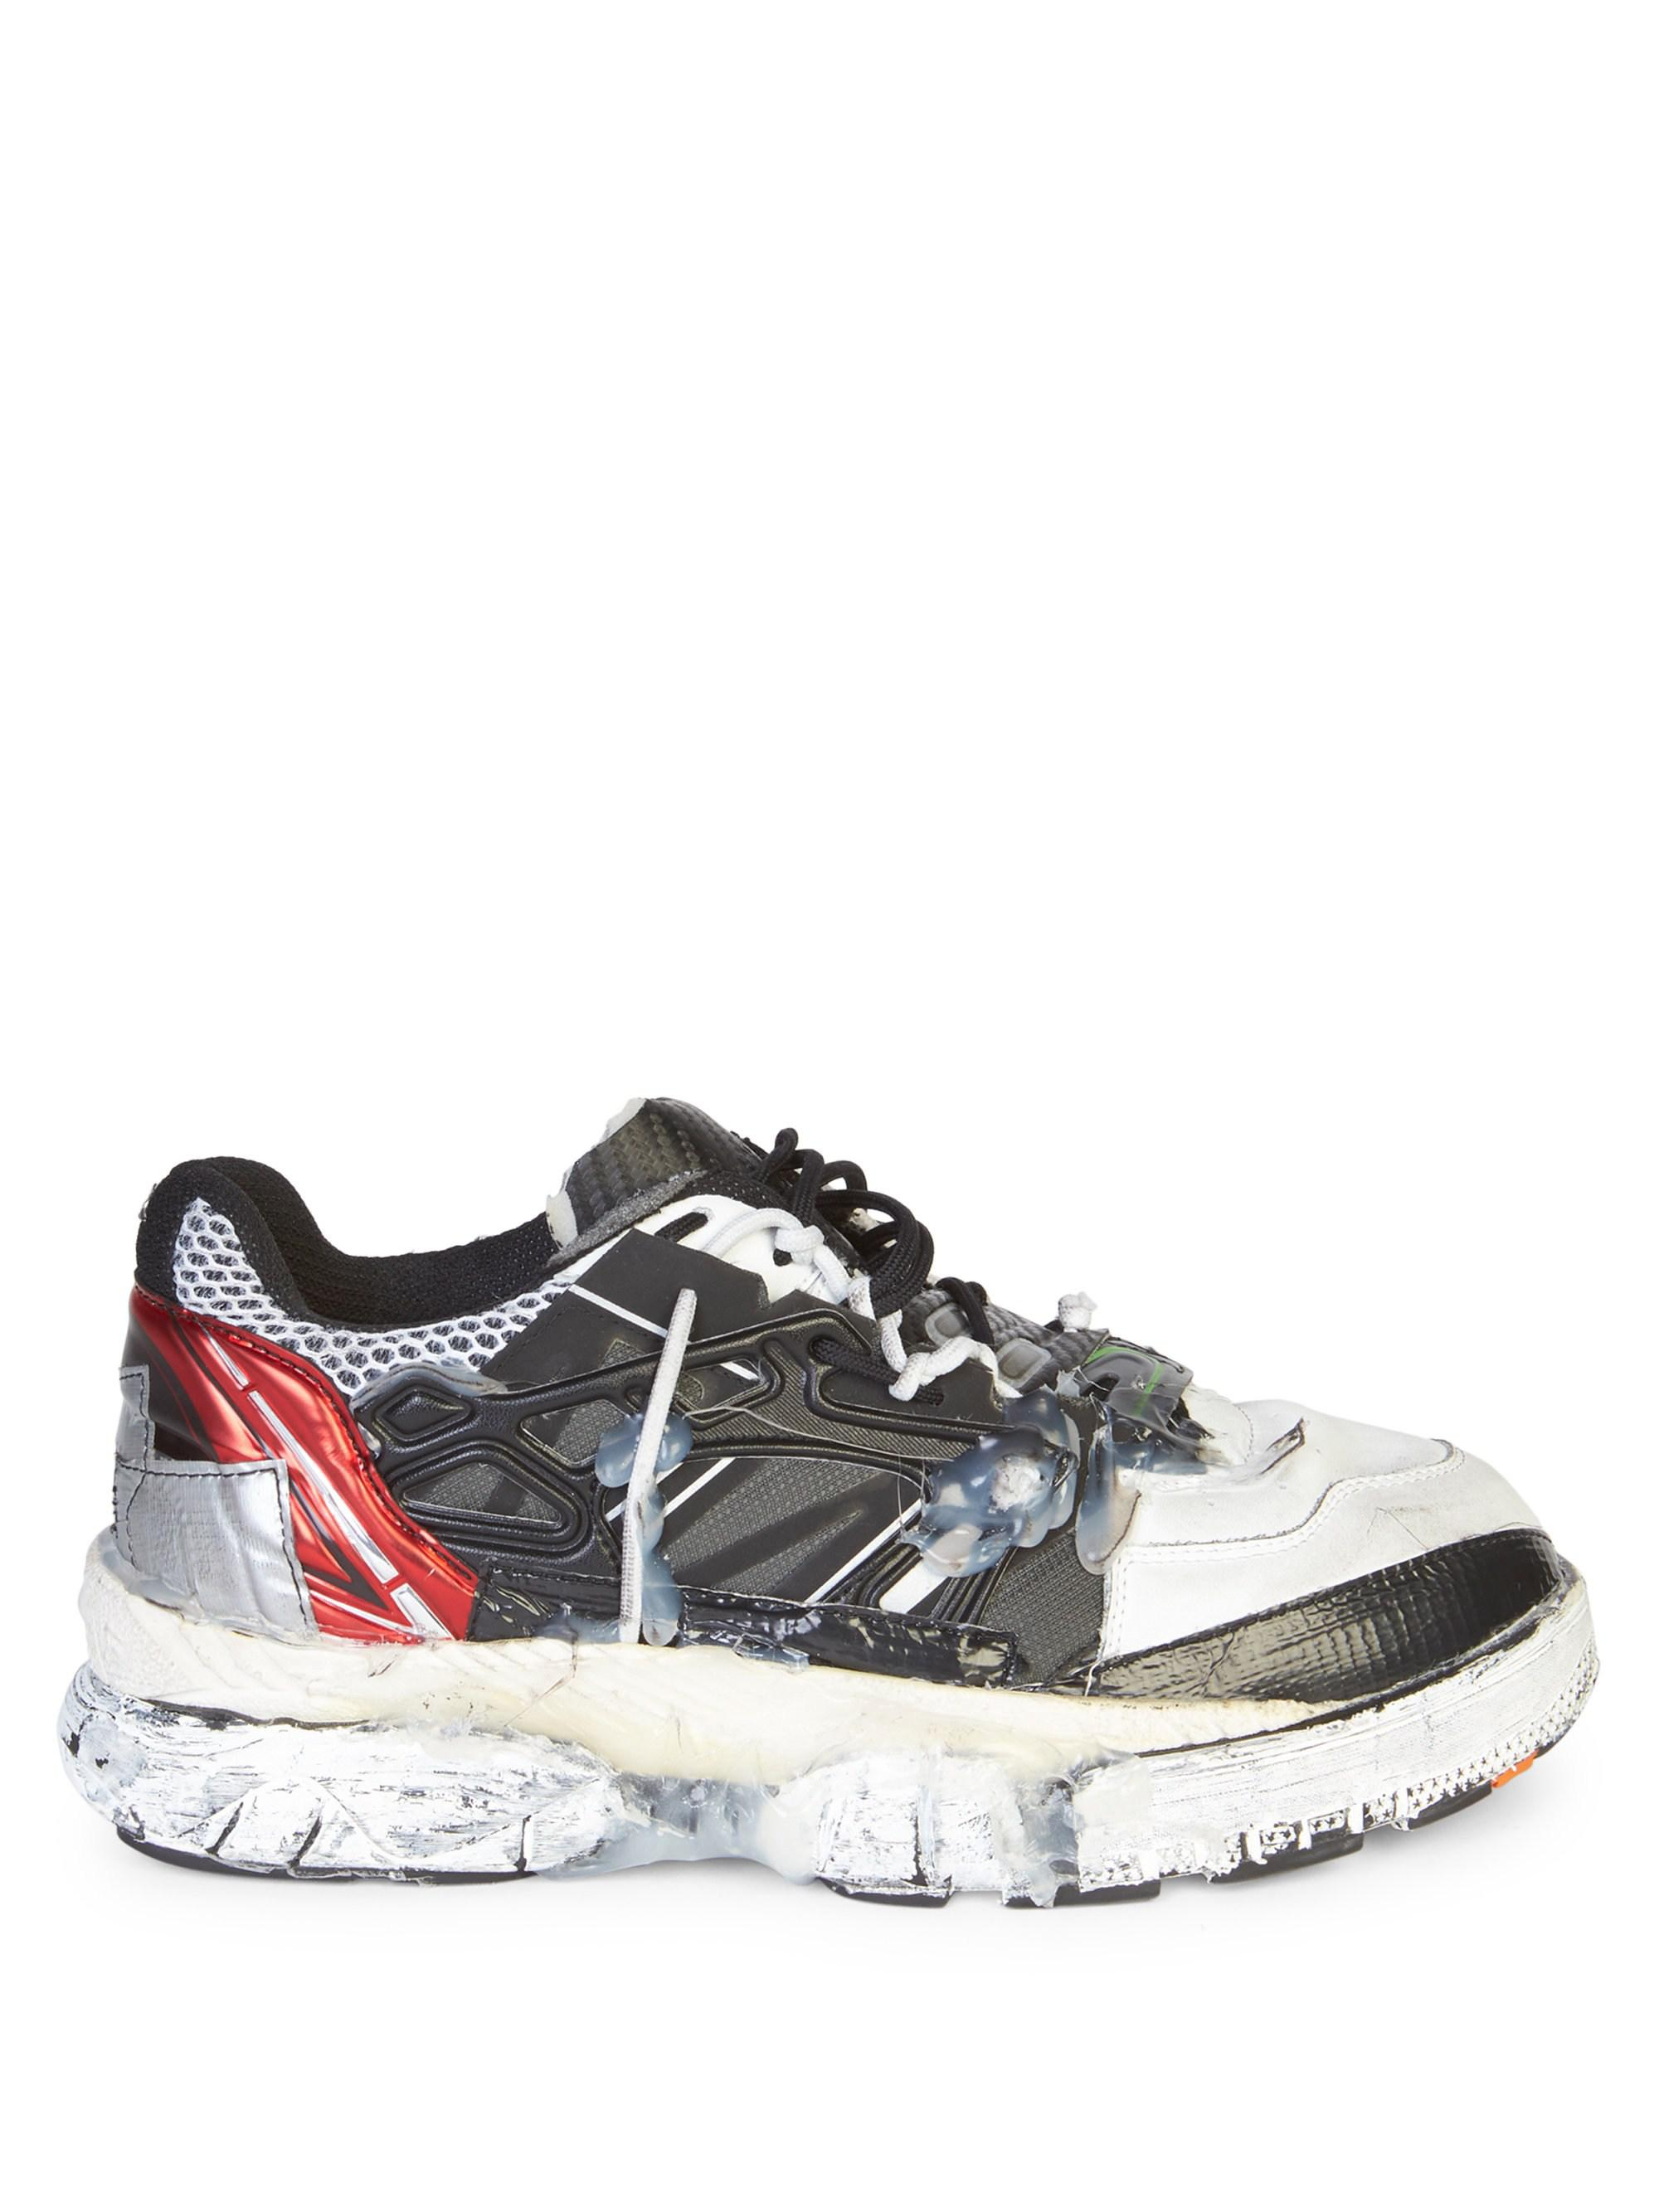 2dacfb0d641 Maison Margiela Leather Fusion Low-top Runners for Men - Save 23% - Lyst